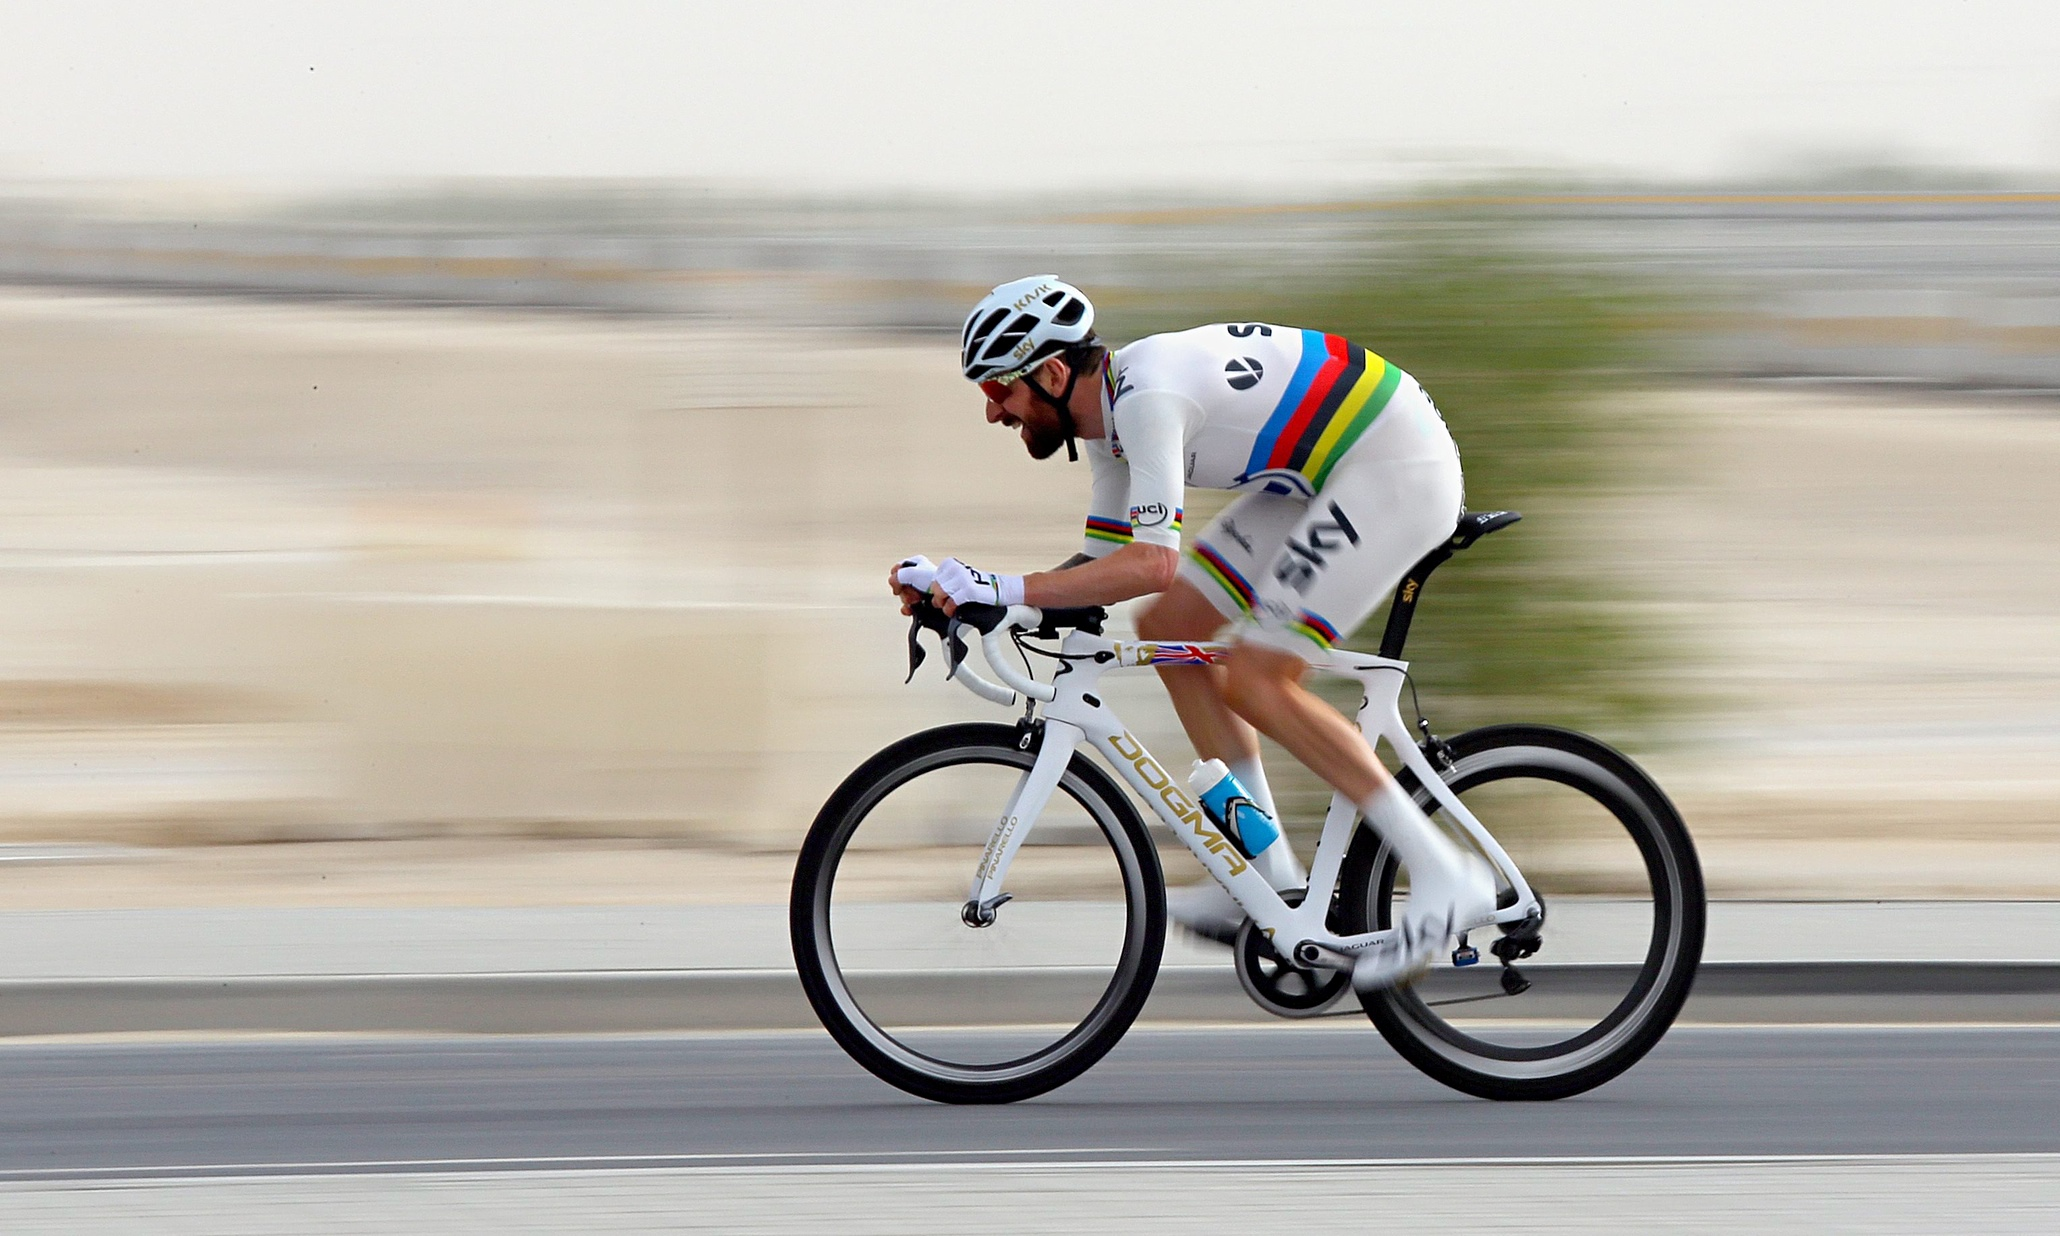 https://i2.wp.com/static.guim.co.uk/sys-images/Sport/Pix/pictures/2015/2/10/1423591704644/Bradley-Wiggins--009.jpg